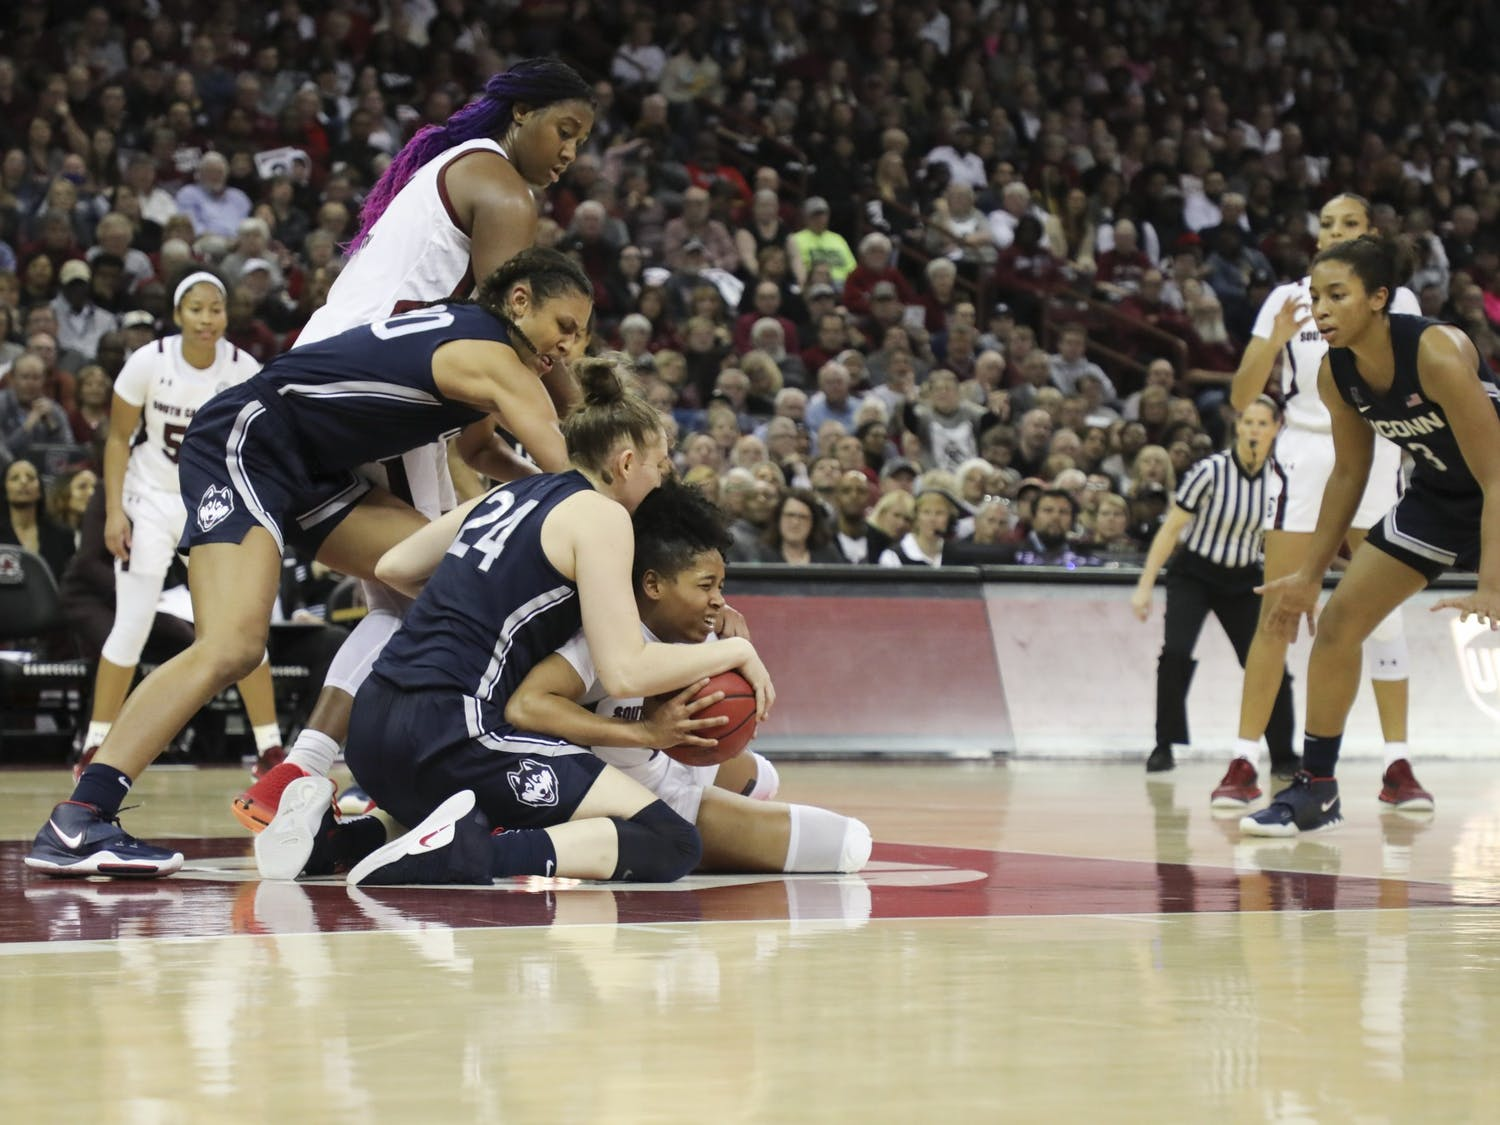 Freshman guard Zia Cooke attempts to keep the ball away from two UConn players. Cooke scored 15 points and had four rebounds against the Huskies.